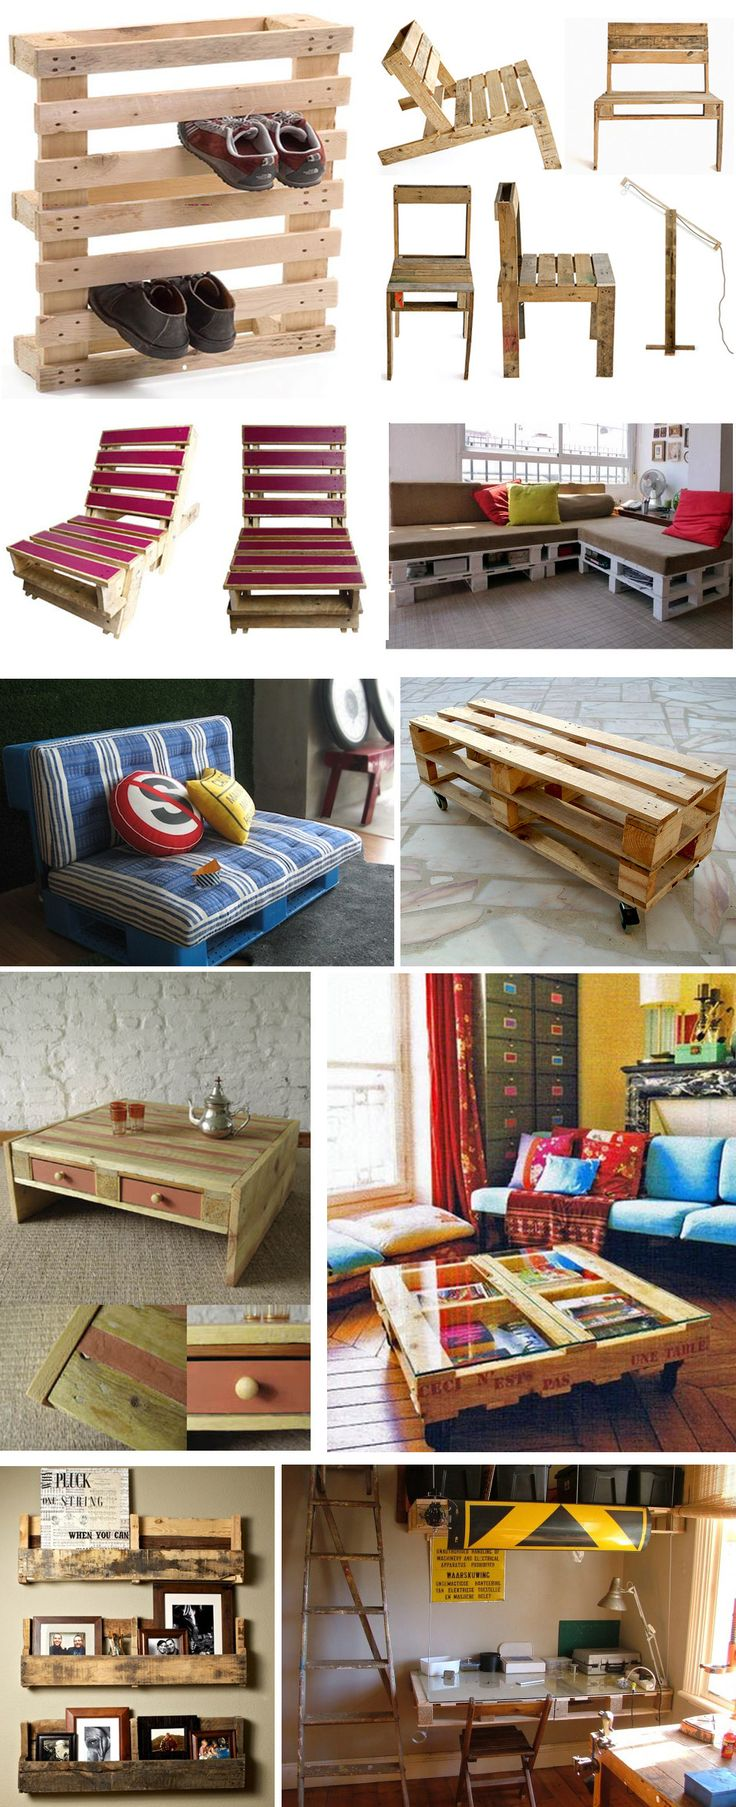 Amazing collection of pallet furniture.